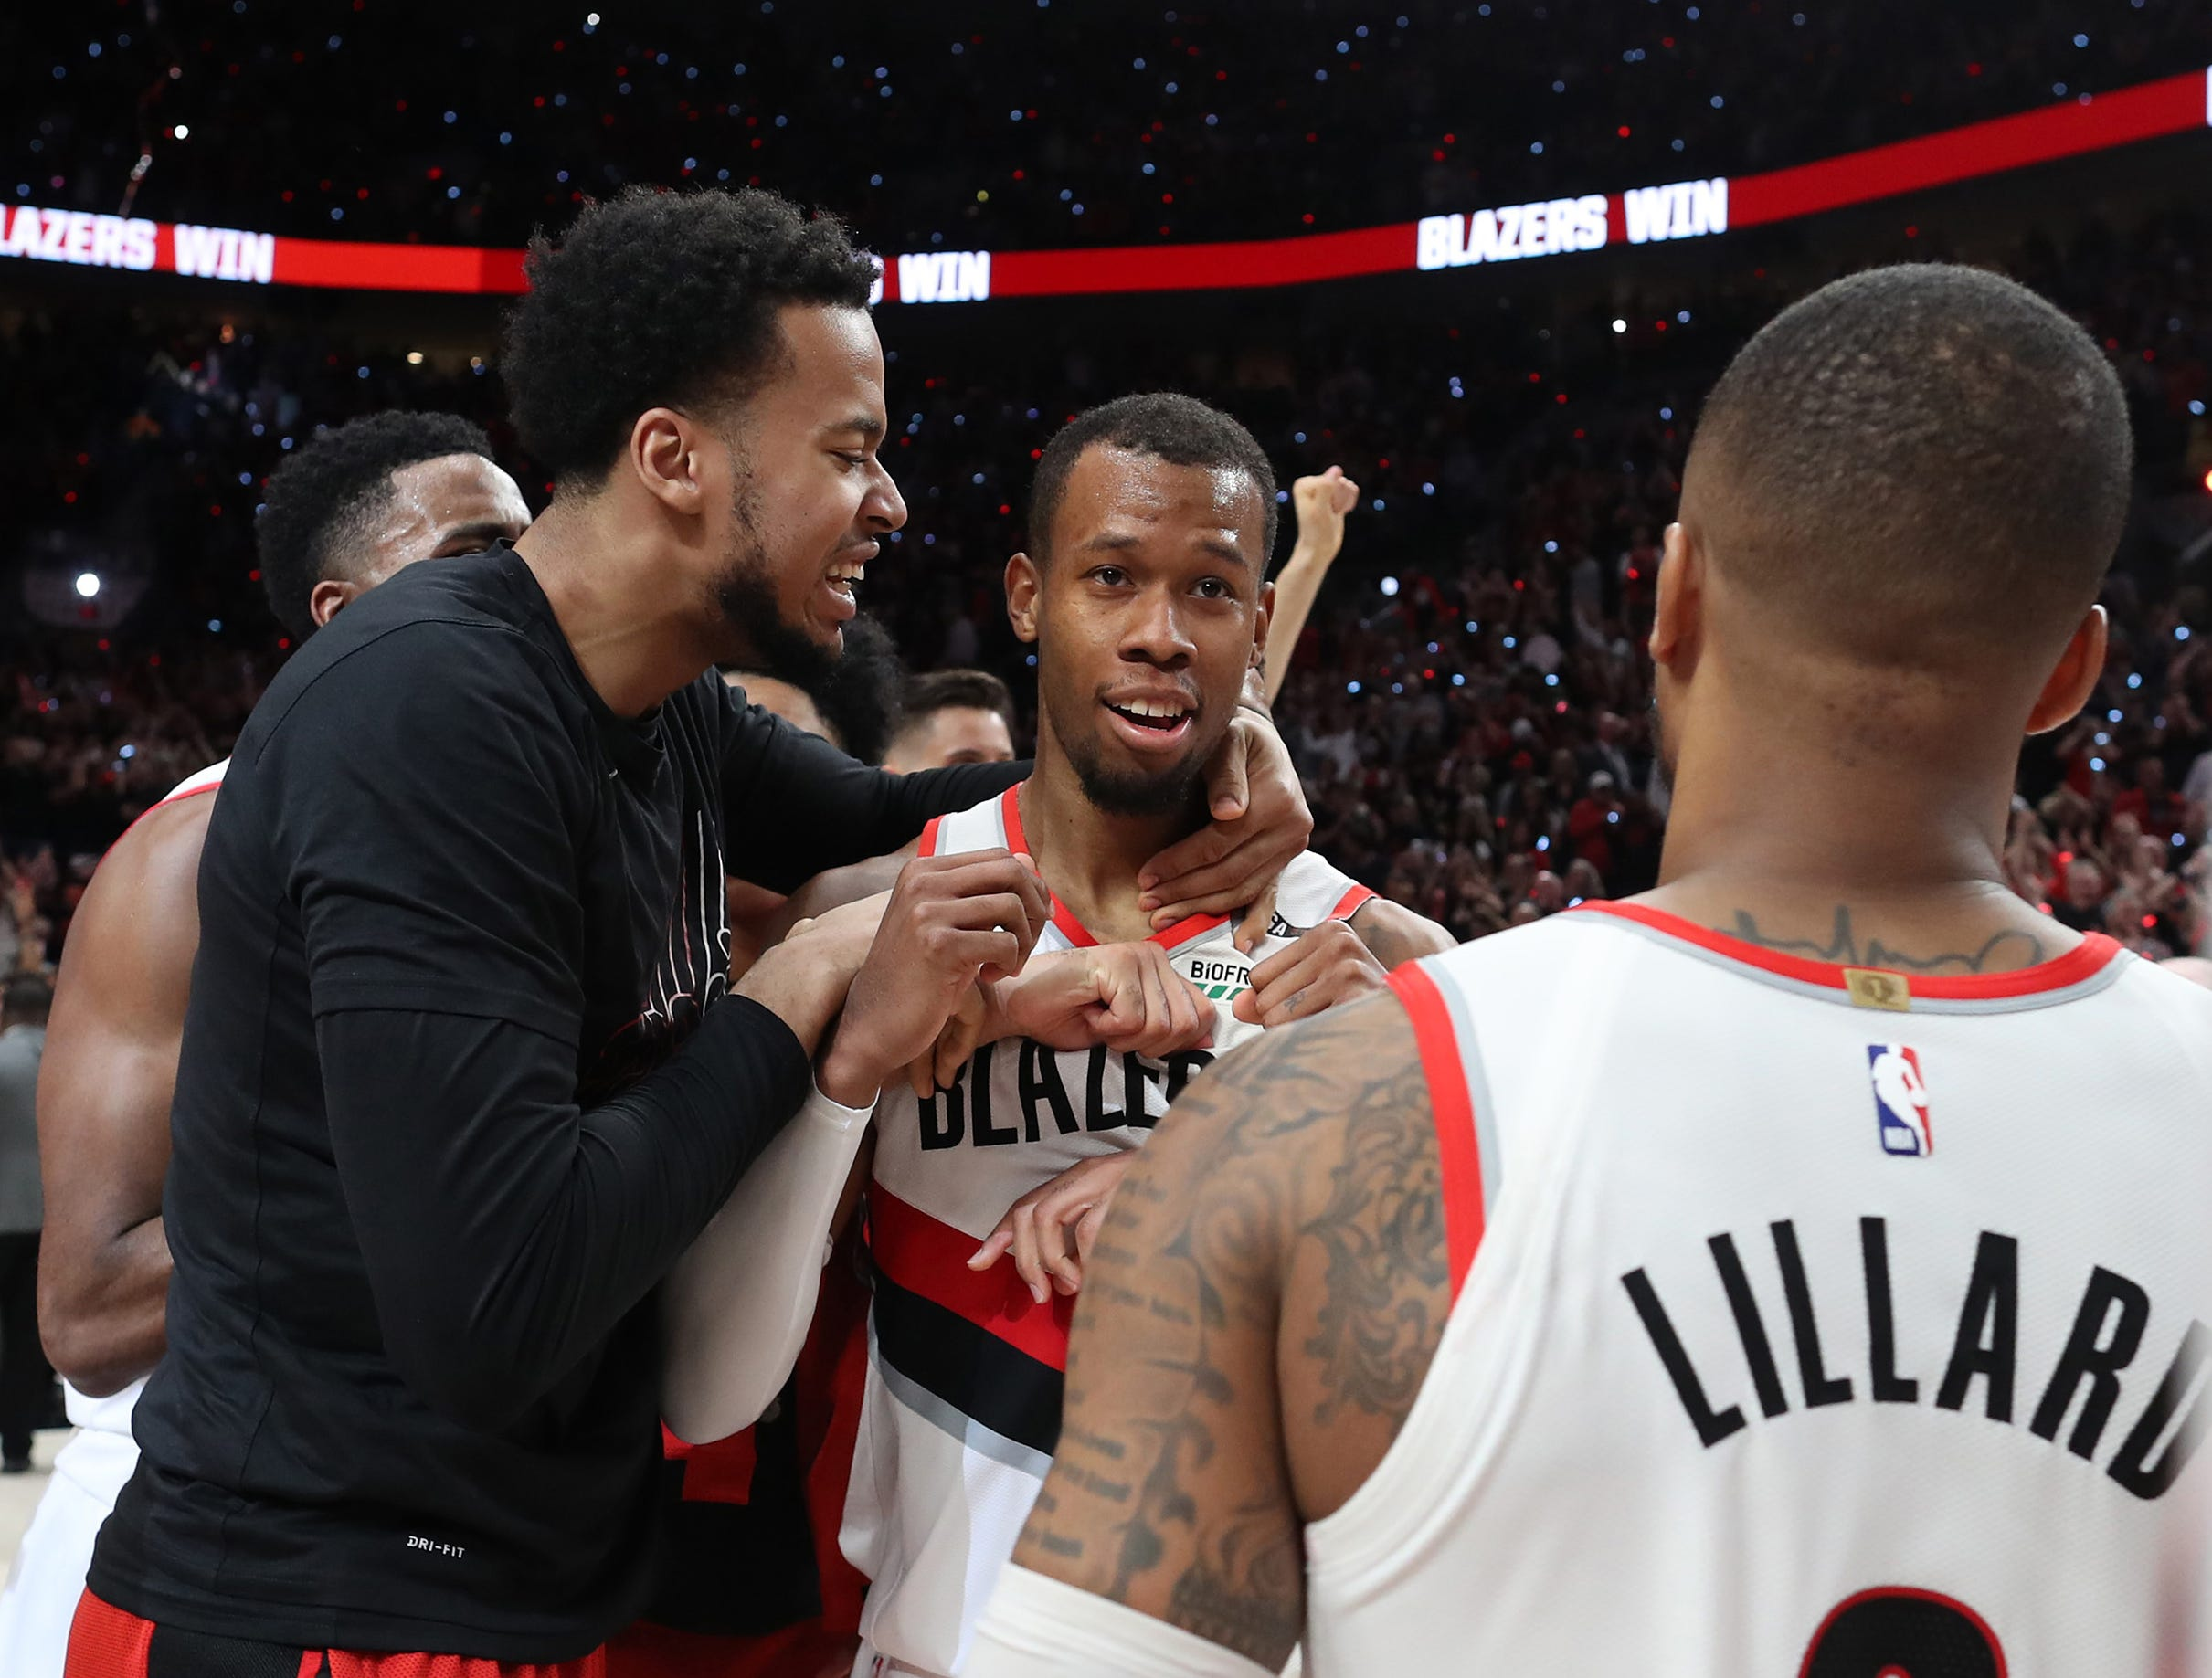 May 3: Portland Trail Blazers guard Rodney Hood celebrates with teammates after a 140-137 quadruple overtime victory in Game 3 against the Denver Nuggets.